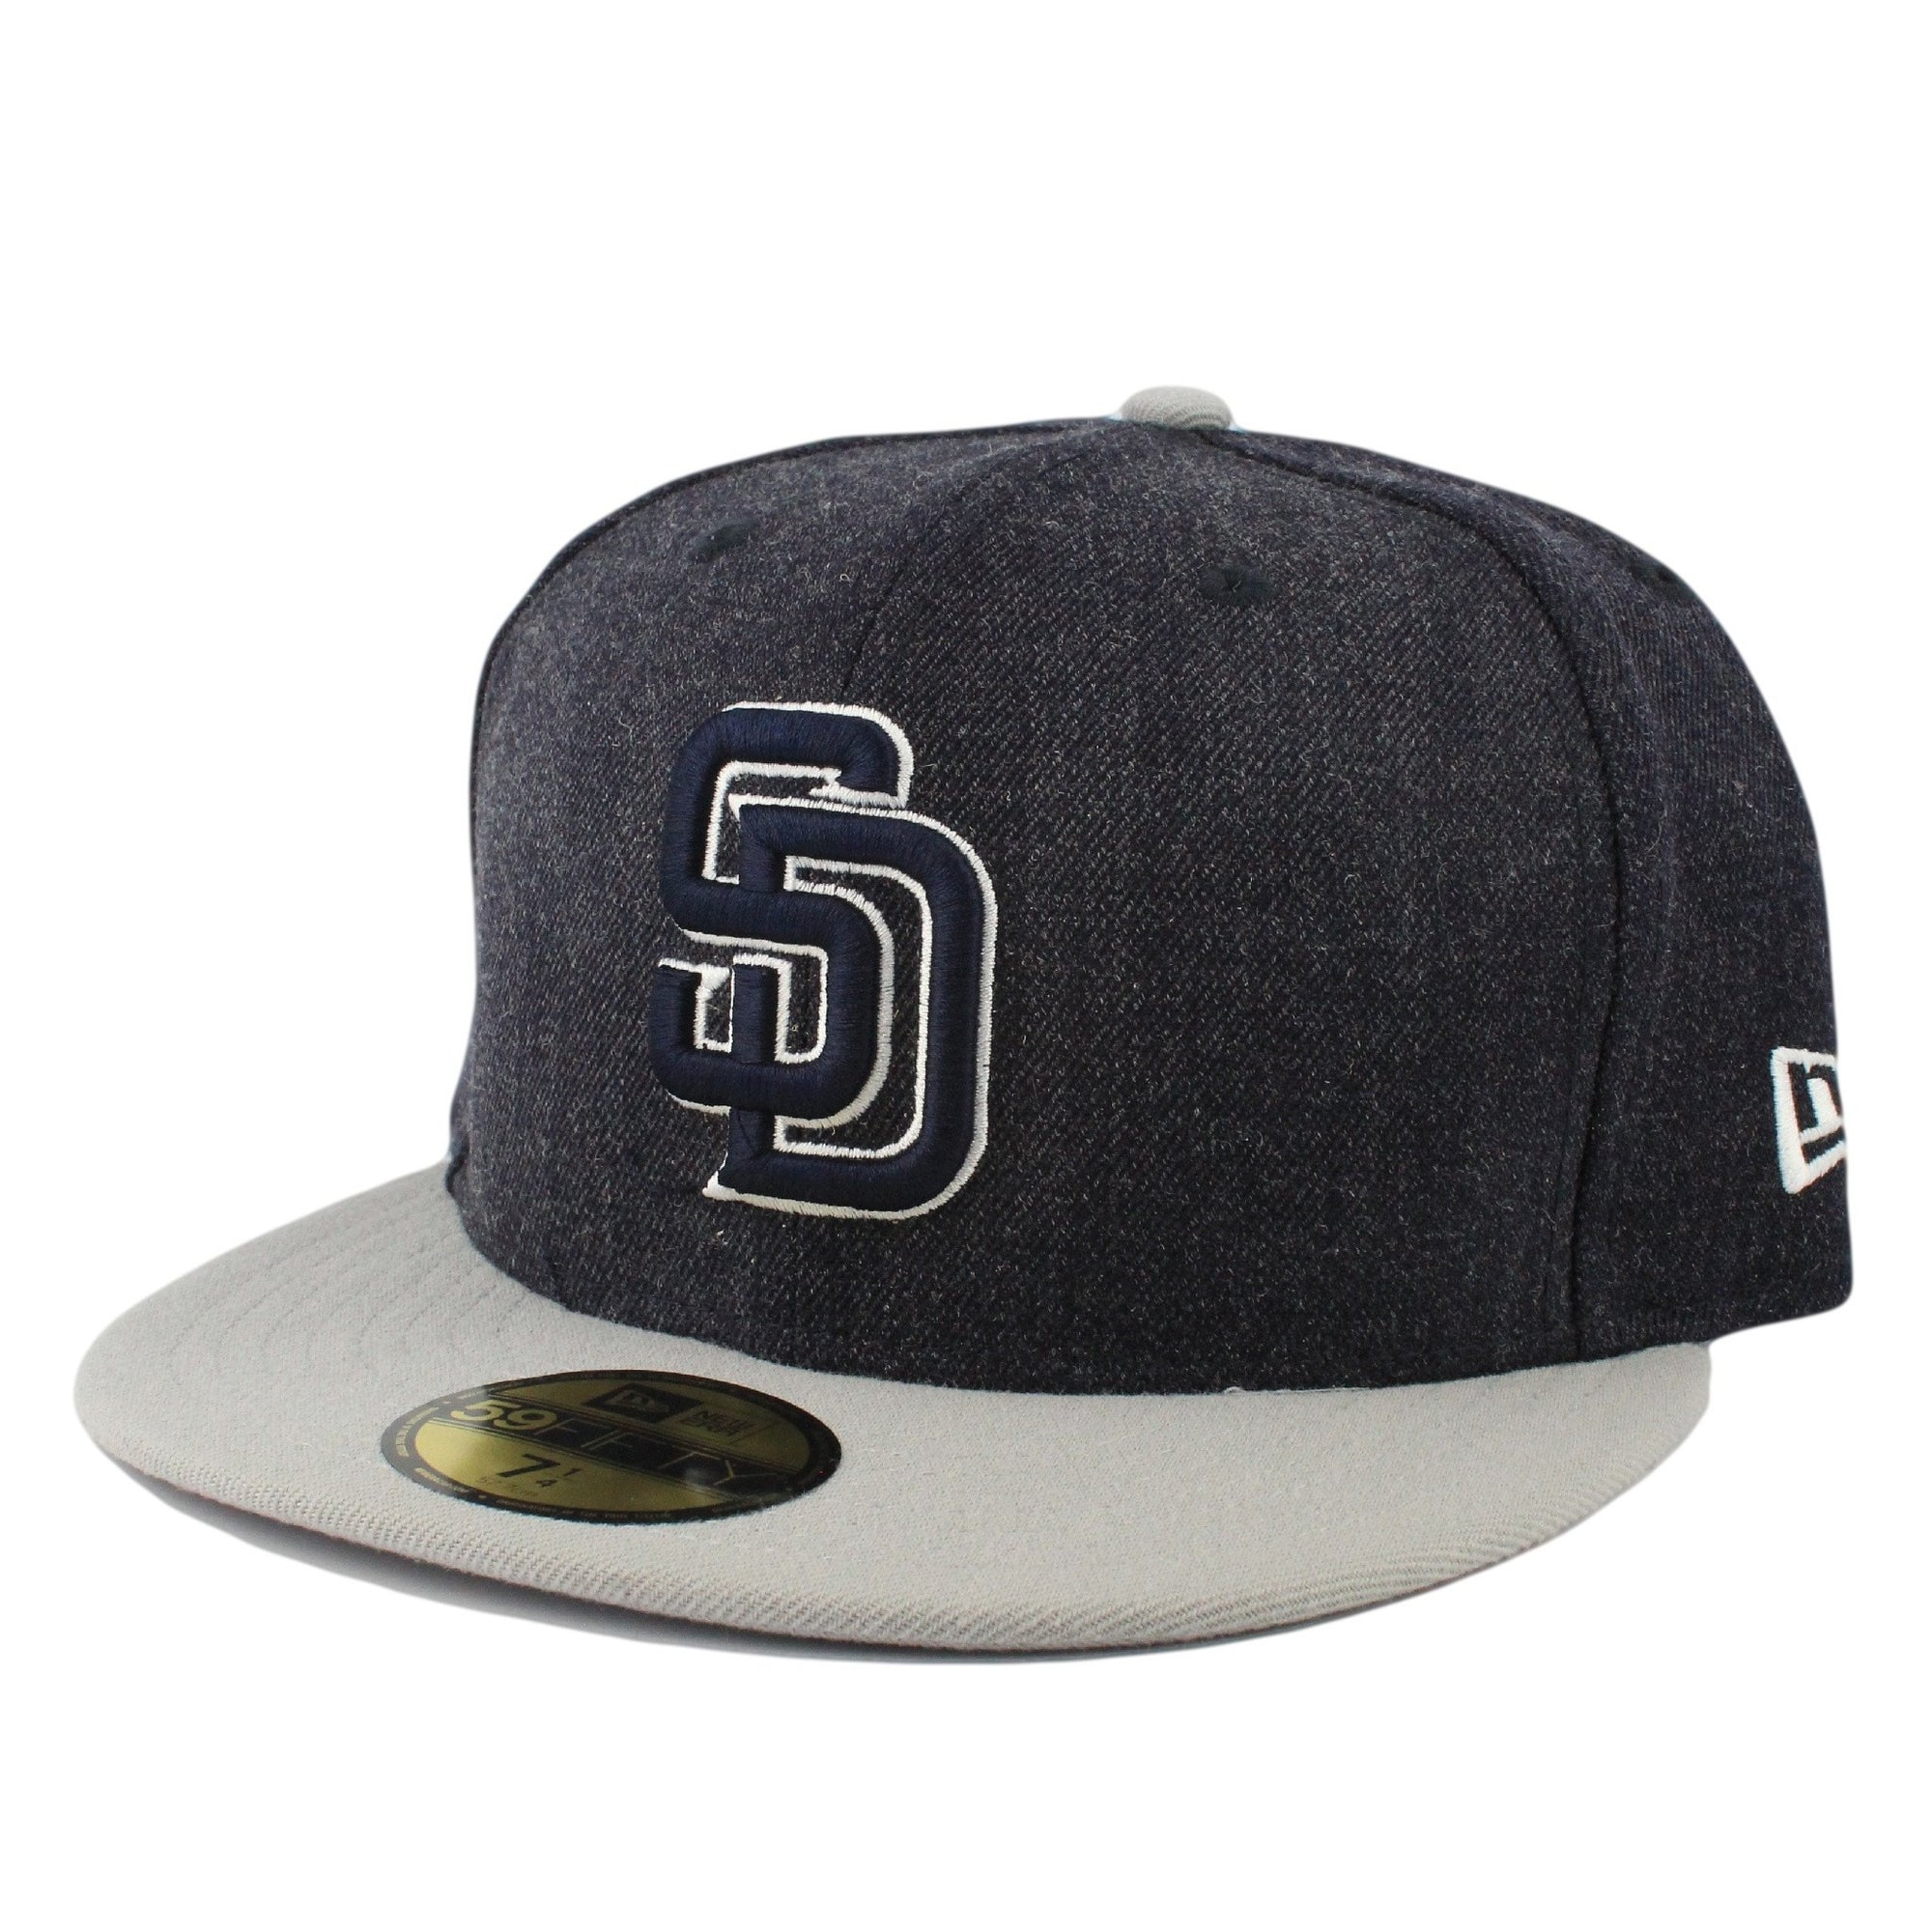 a5bdc9ed1 San Diego Padres League Denim/Gray Fitted